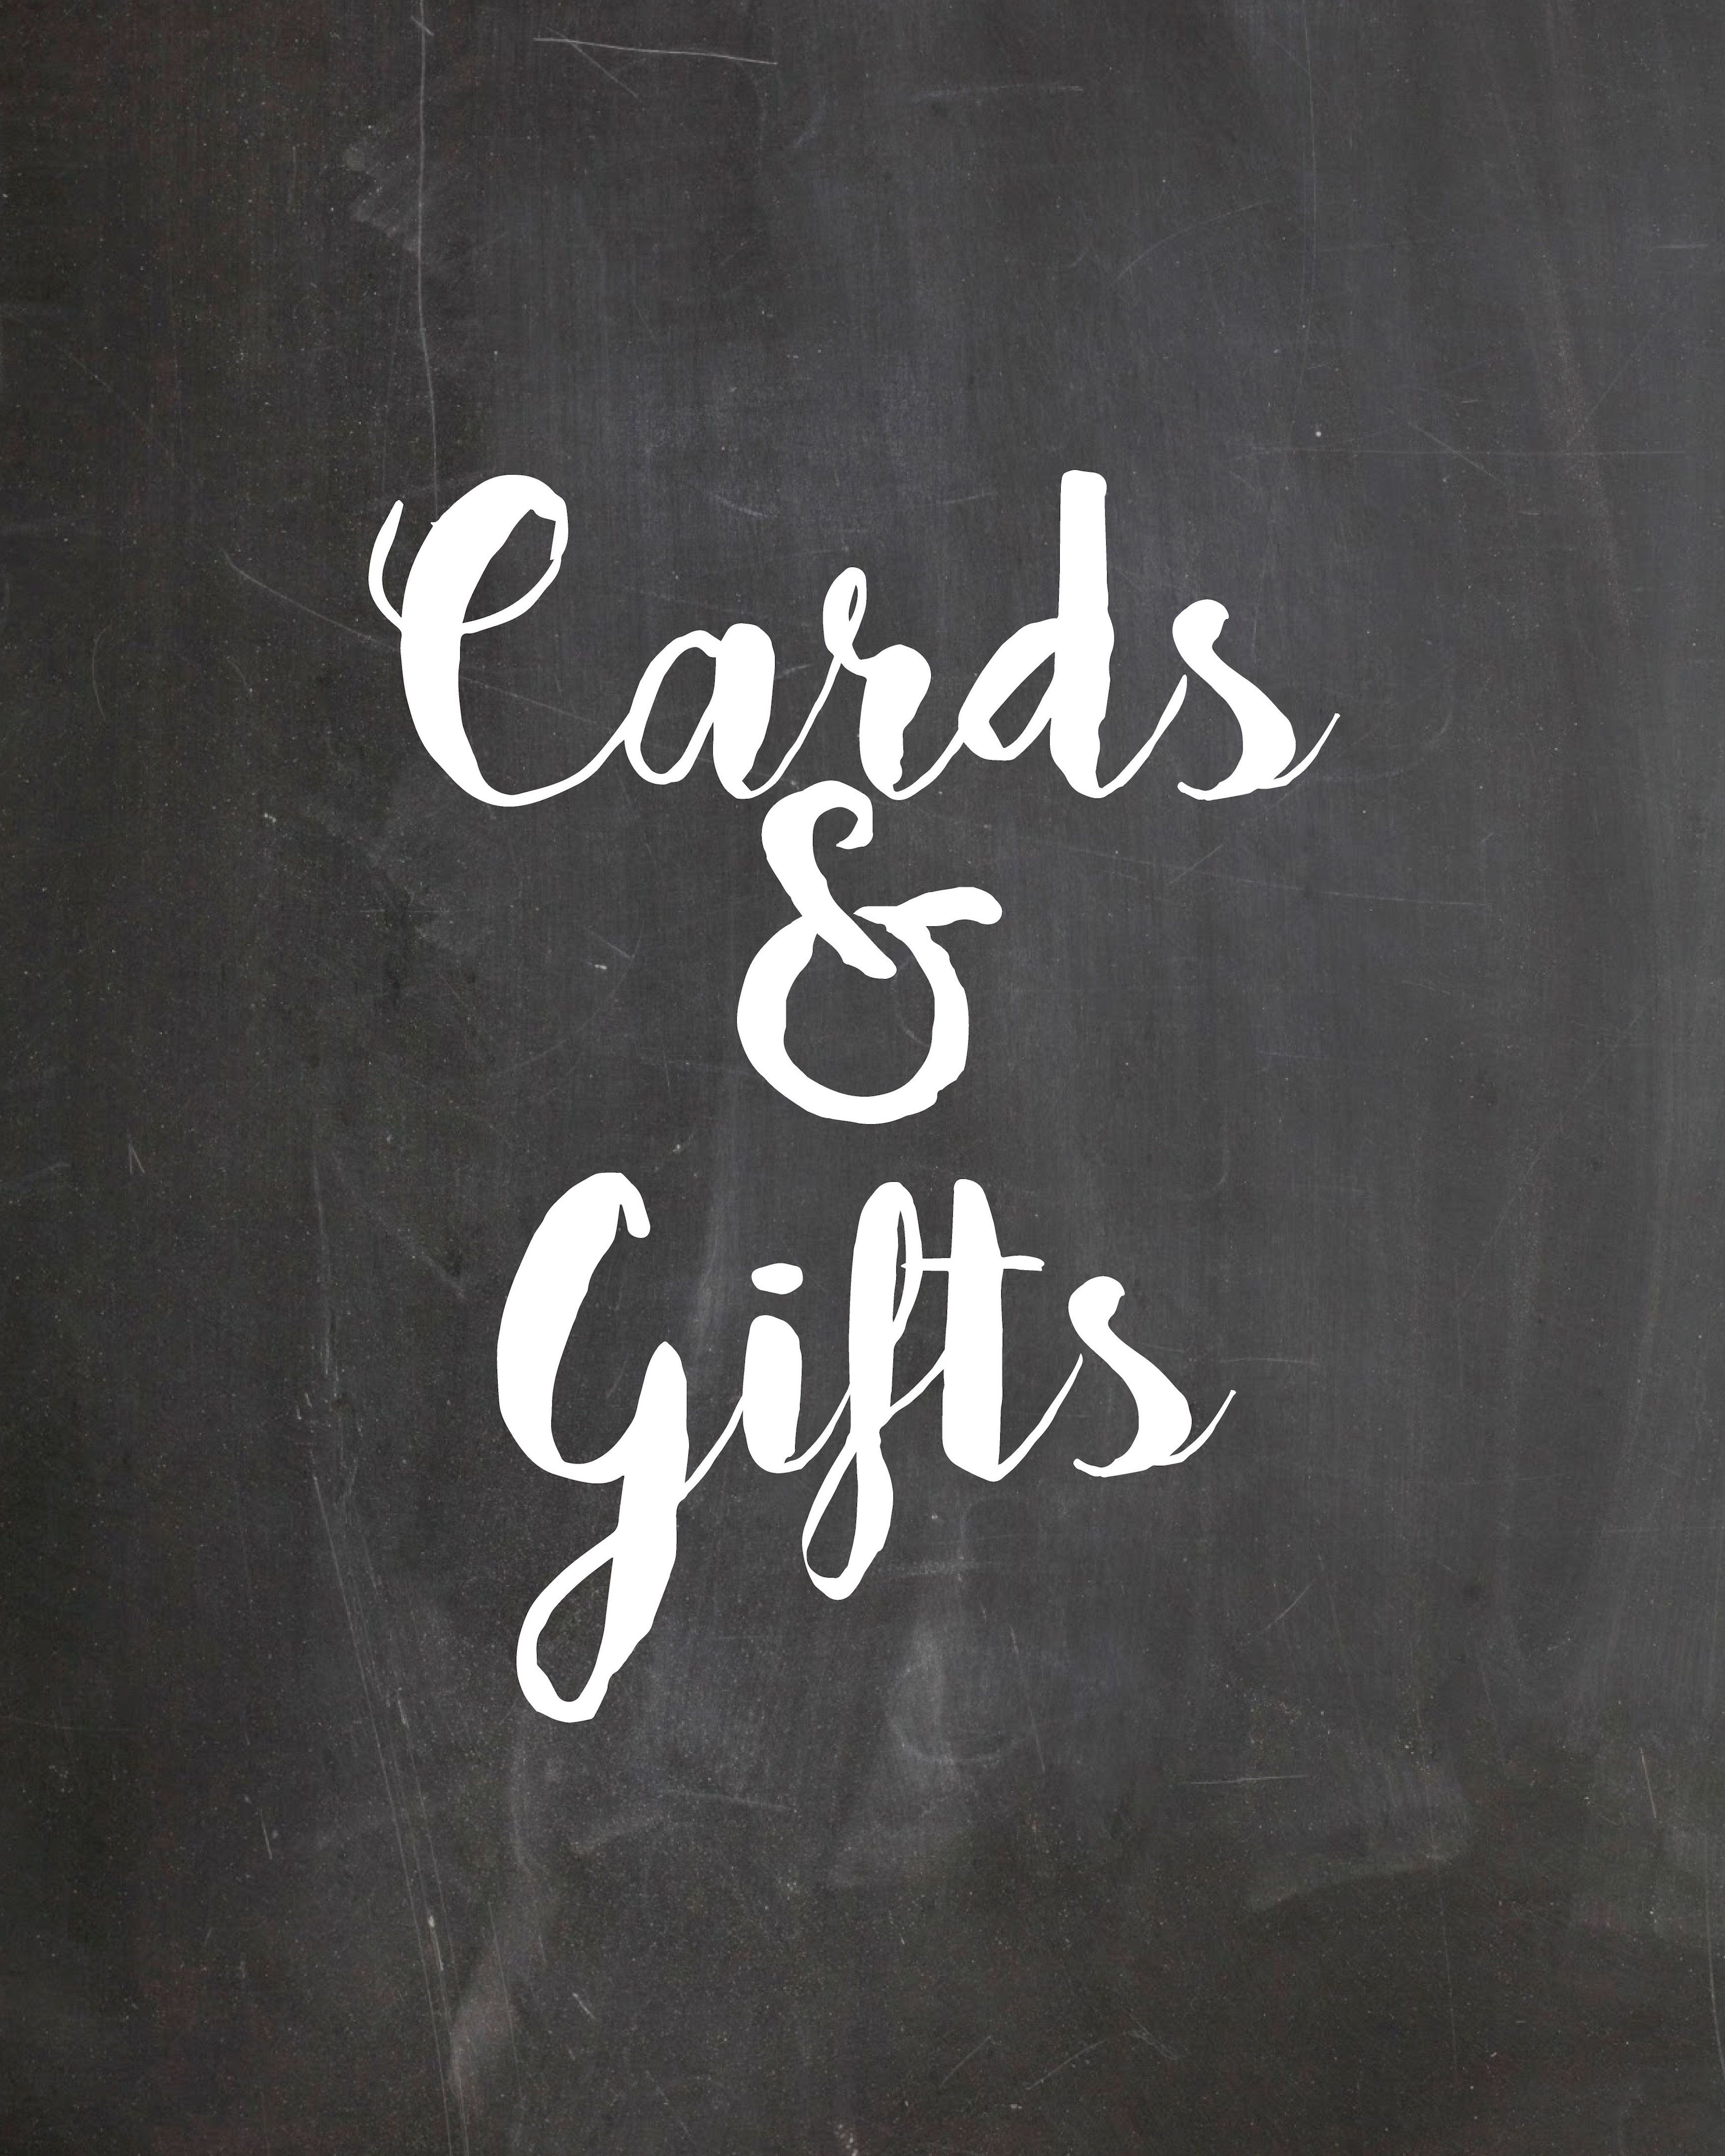 Cards And Gifts Free Wedding Chalkboard Decor Design Printable Signs